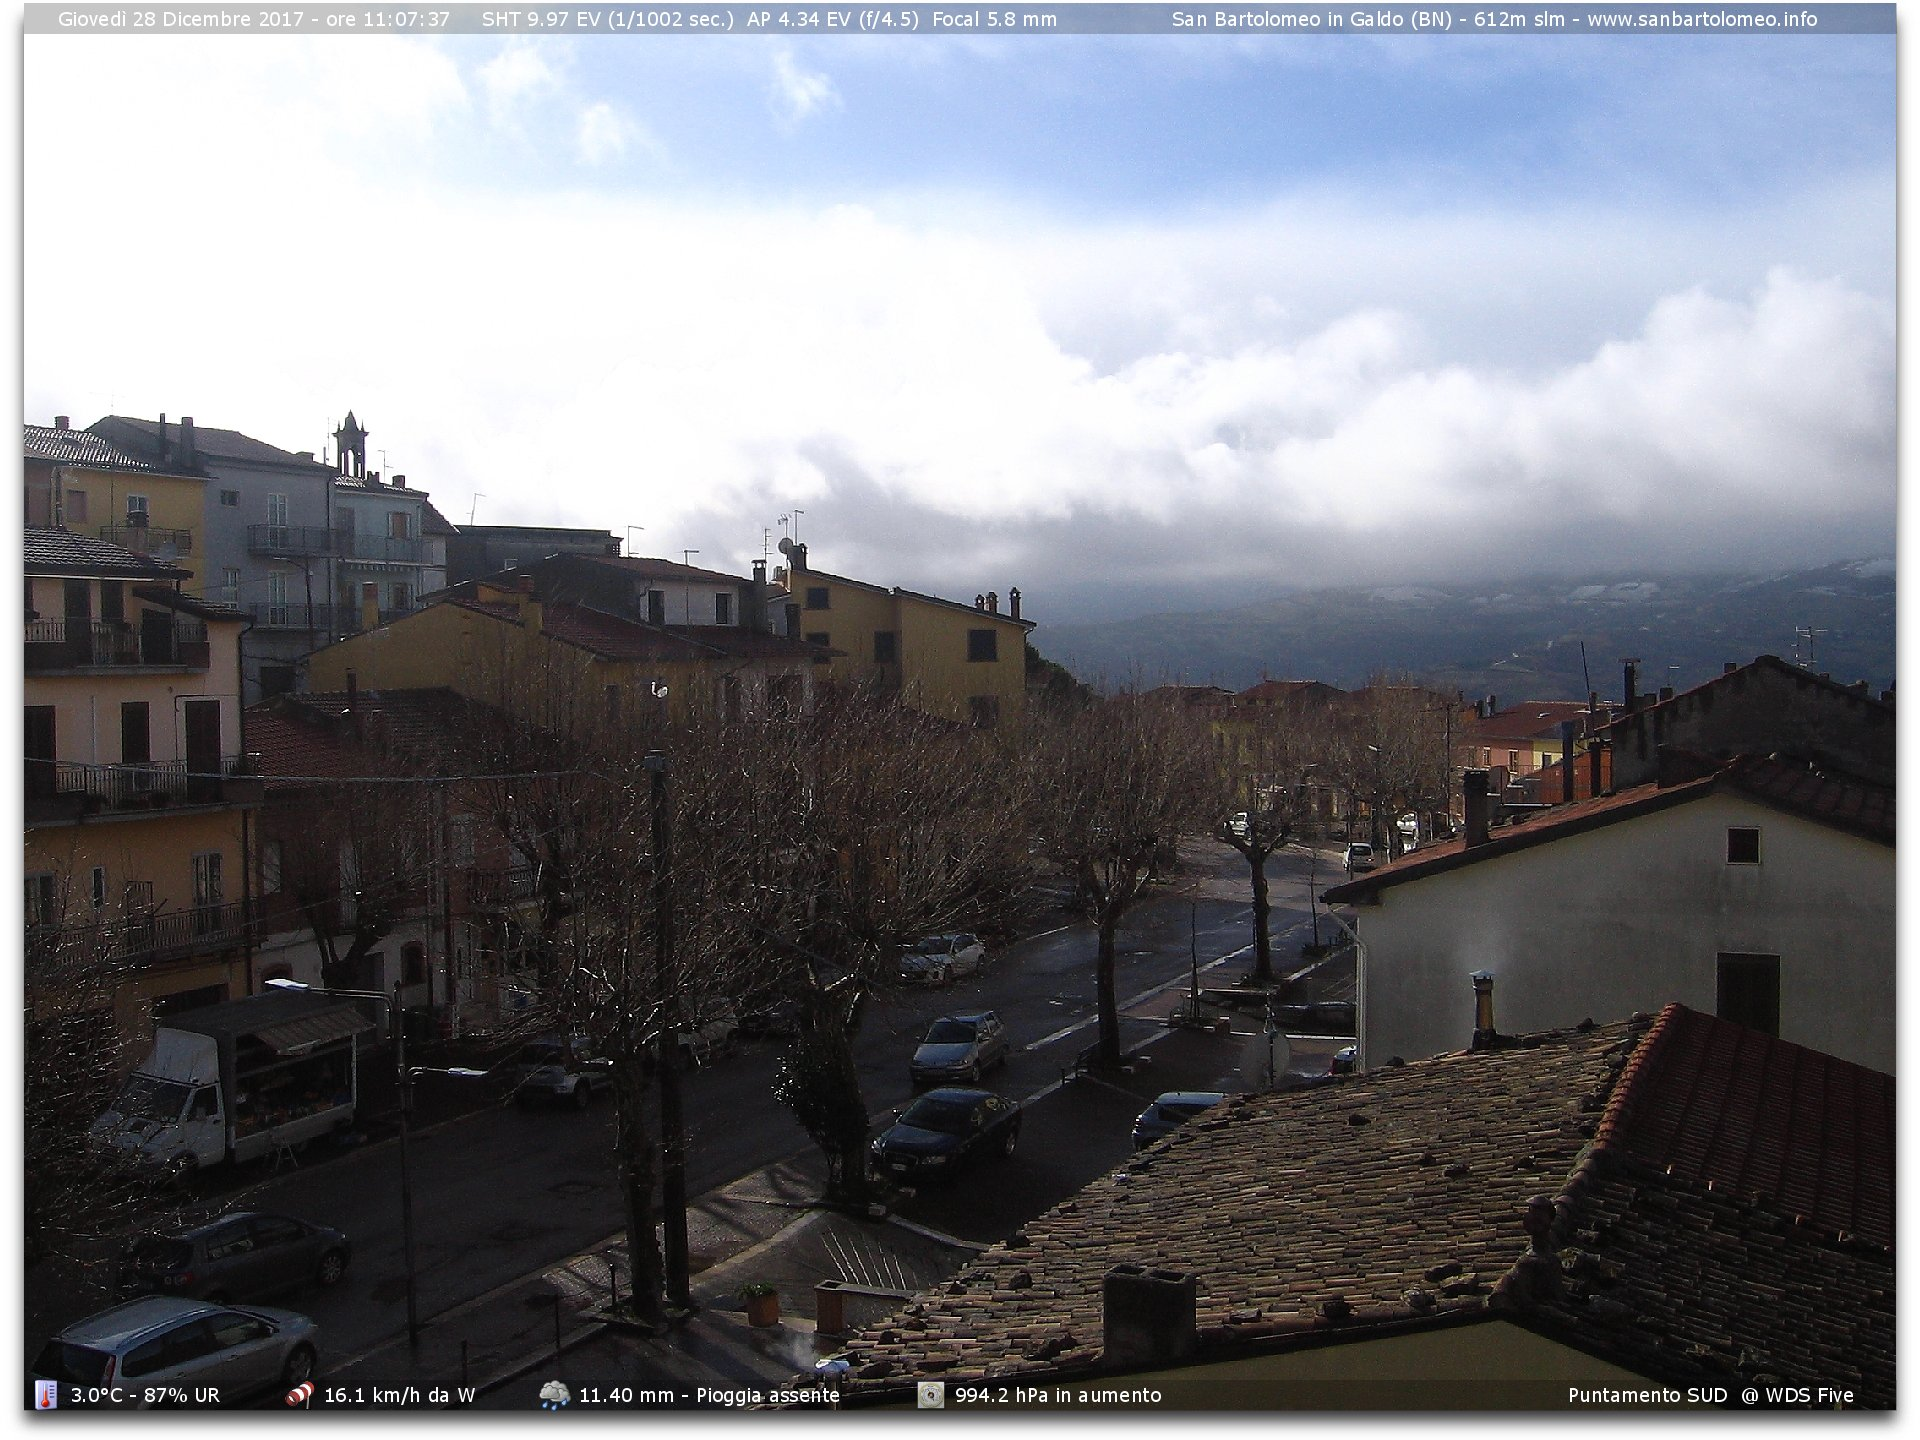 Webcam panoramica su via pasquale circelli dalla villa for In diretta dalla camera